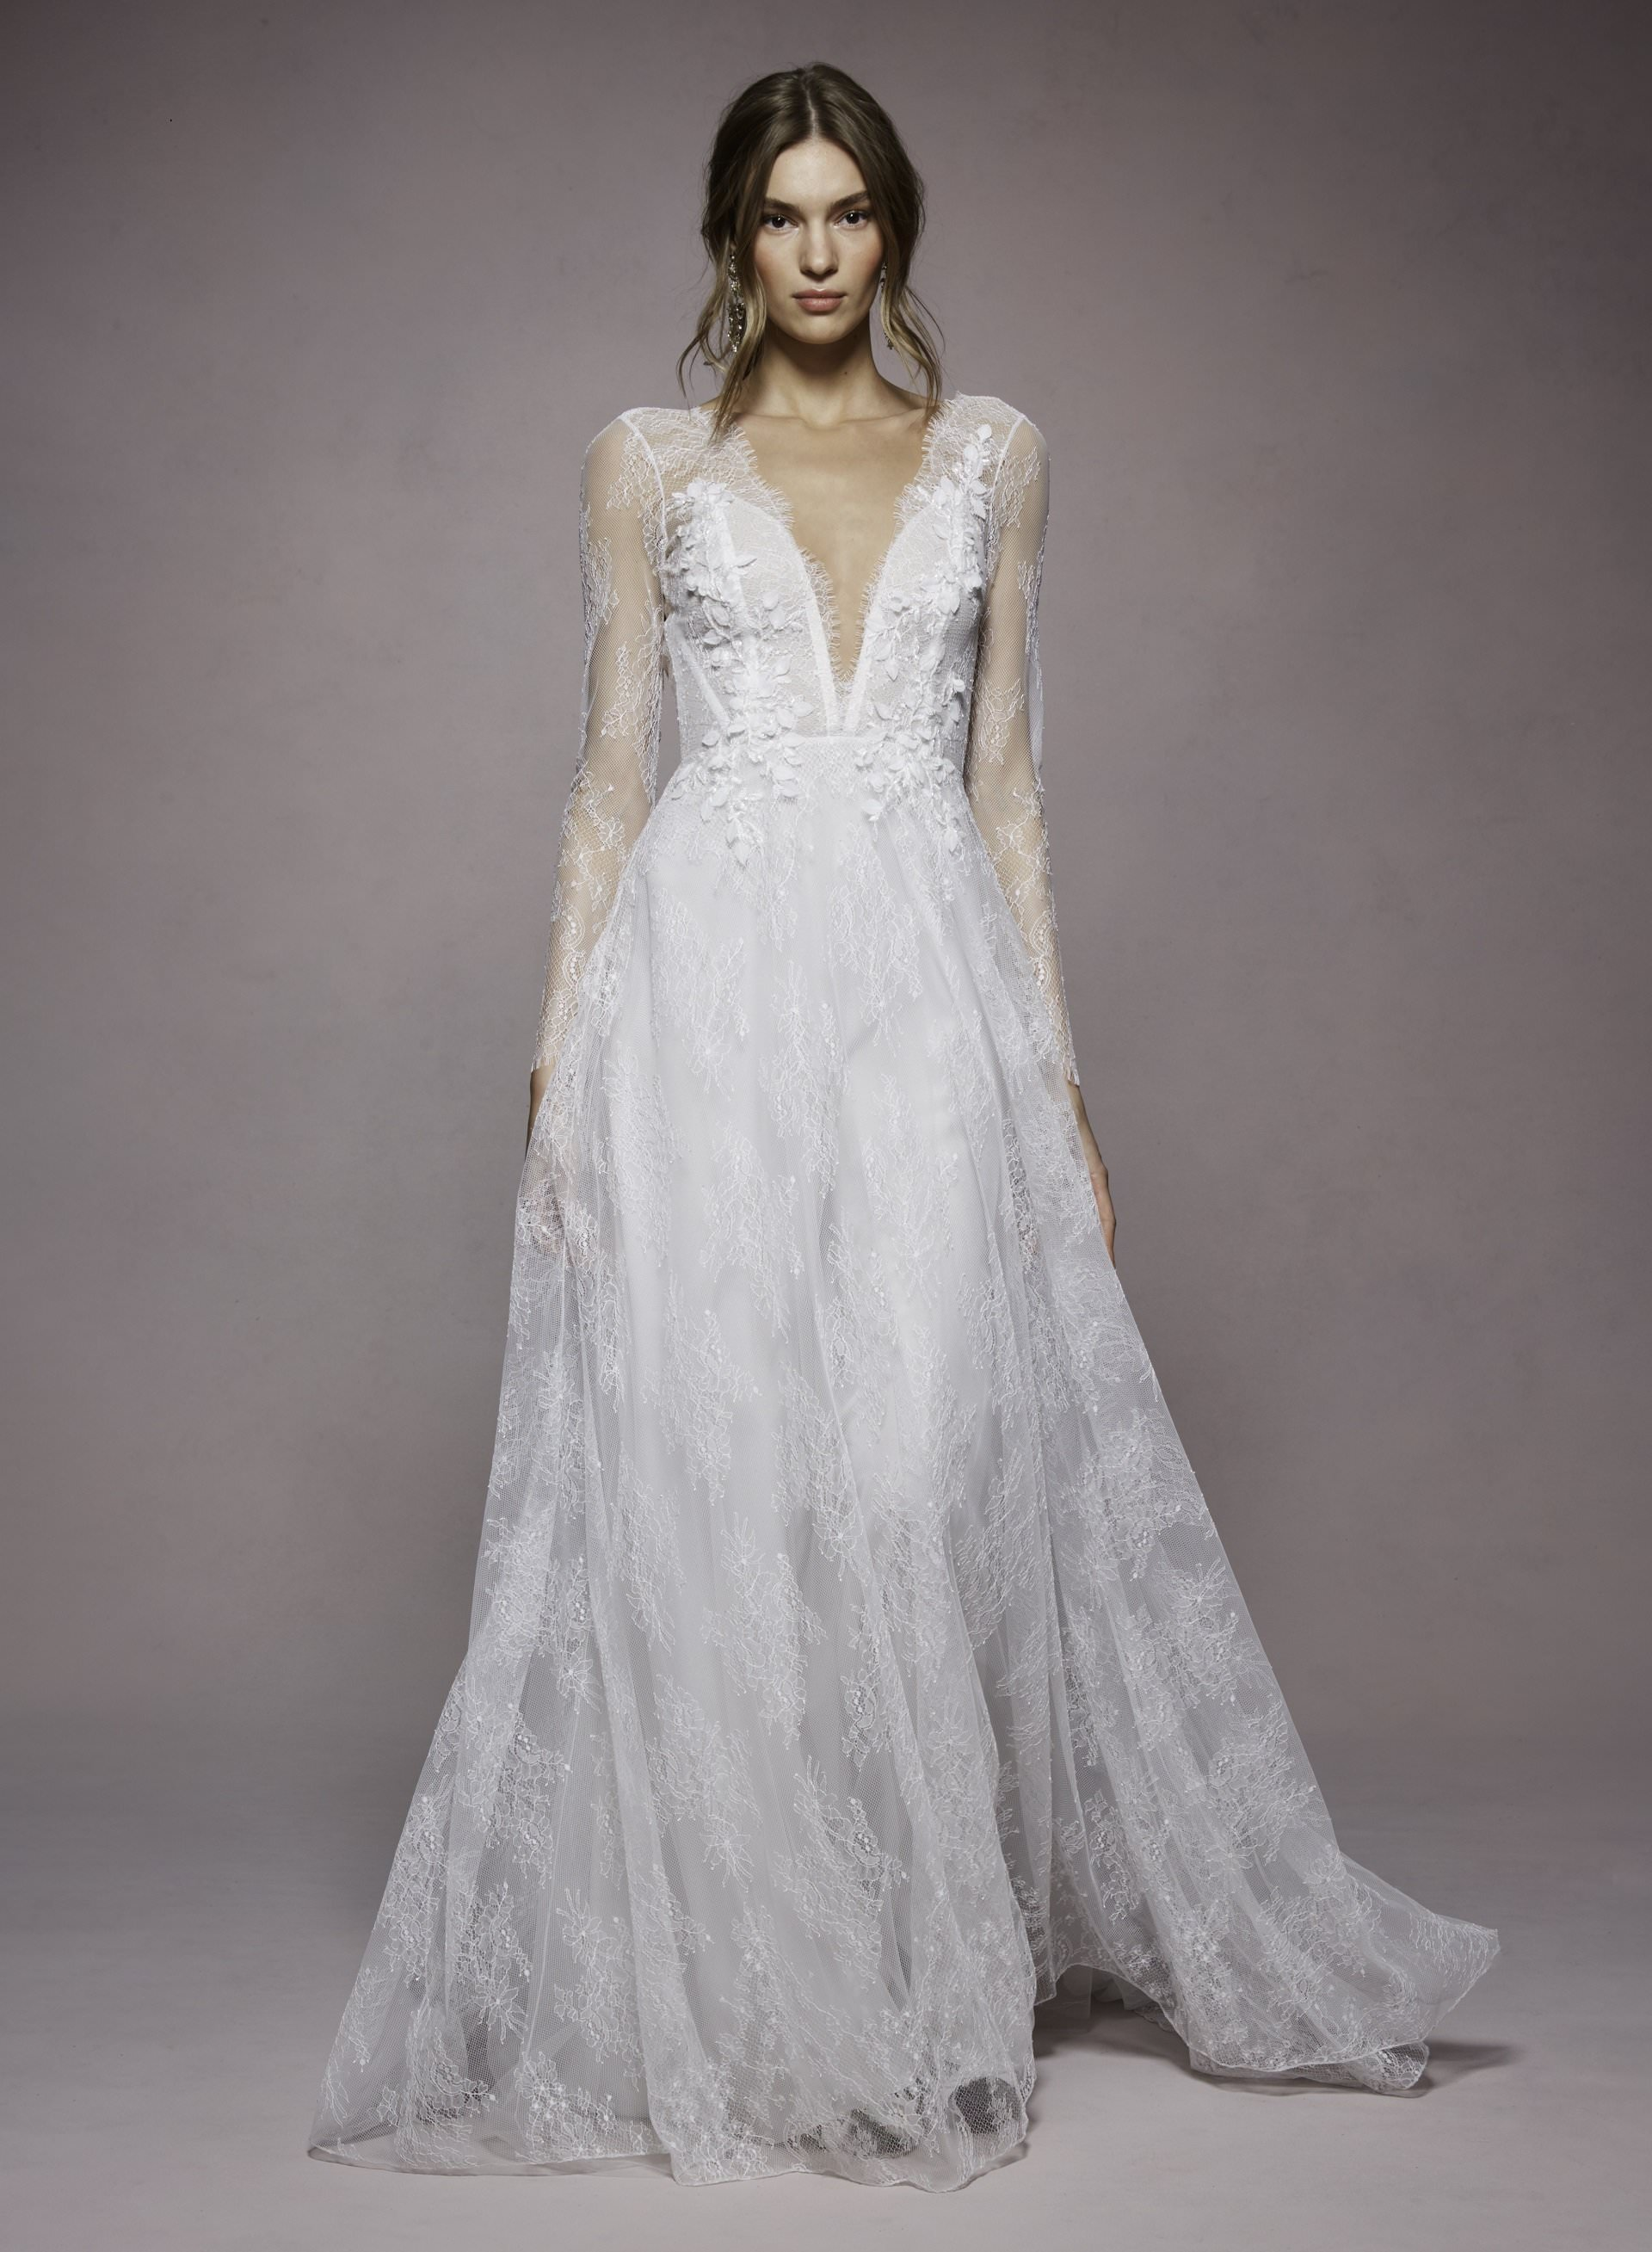 Angela by Marchesa Notte. Marchesa at The White Flower BRidal Boutique.